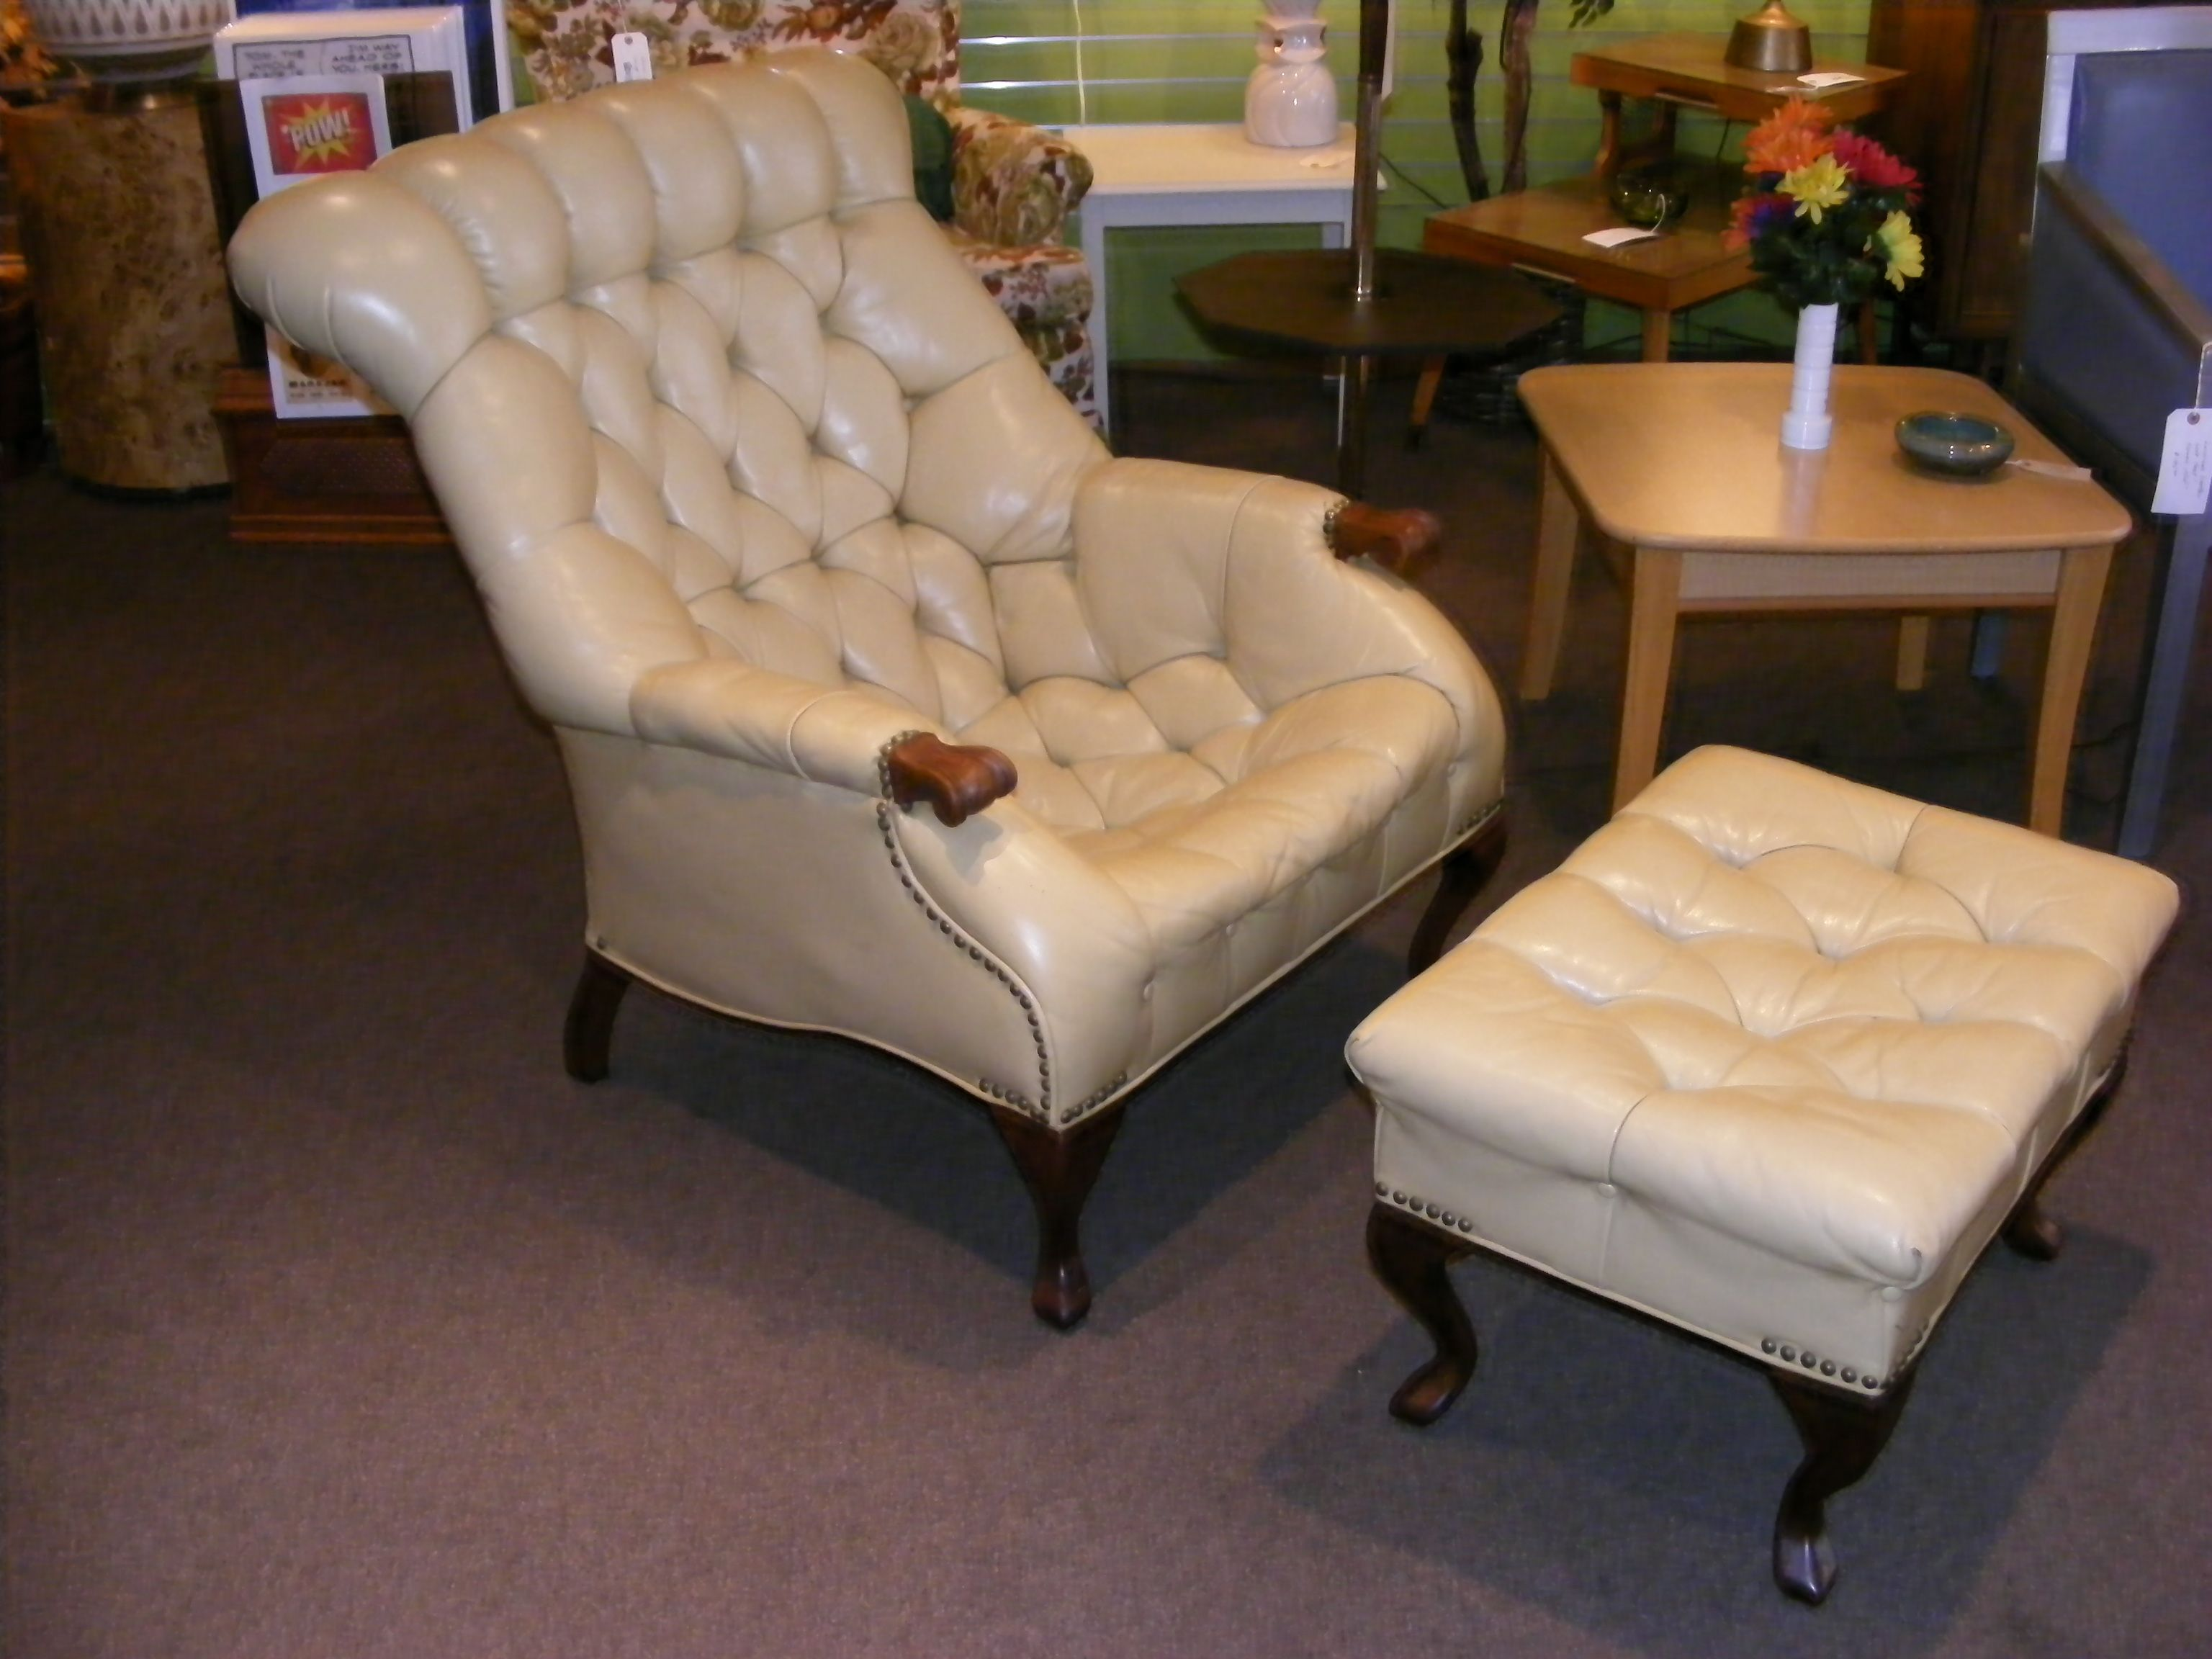 Wonderful Carl Forslund Leather Sleepy Hollow Chair U0026 Ottoman! Made Right Here In  West Michigan!